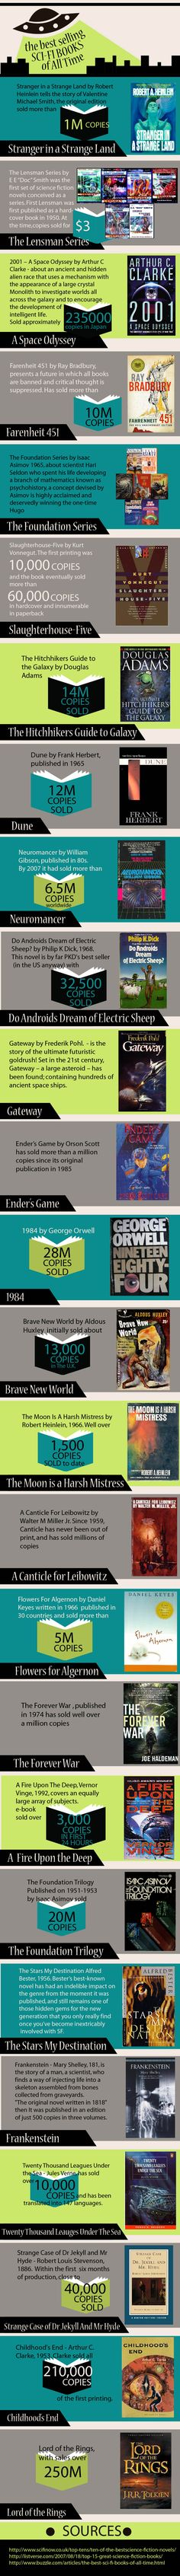 The best selling sci-fi books of all time infographic: BAM. Reading list.